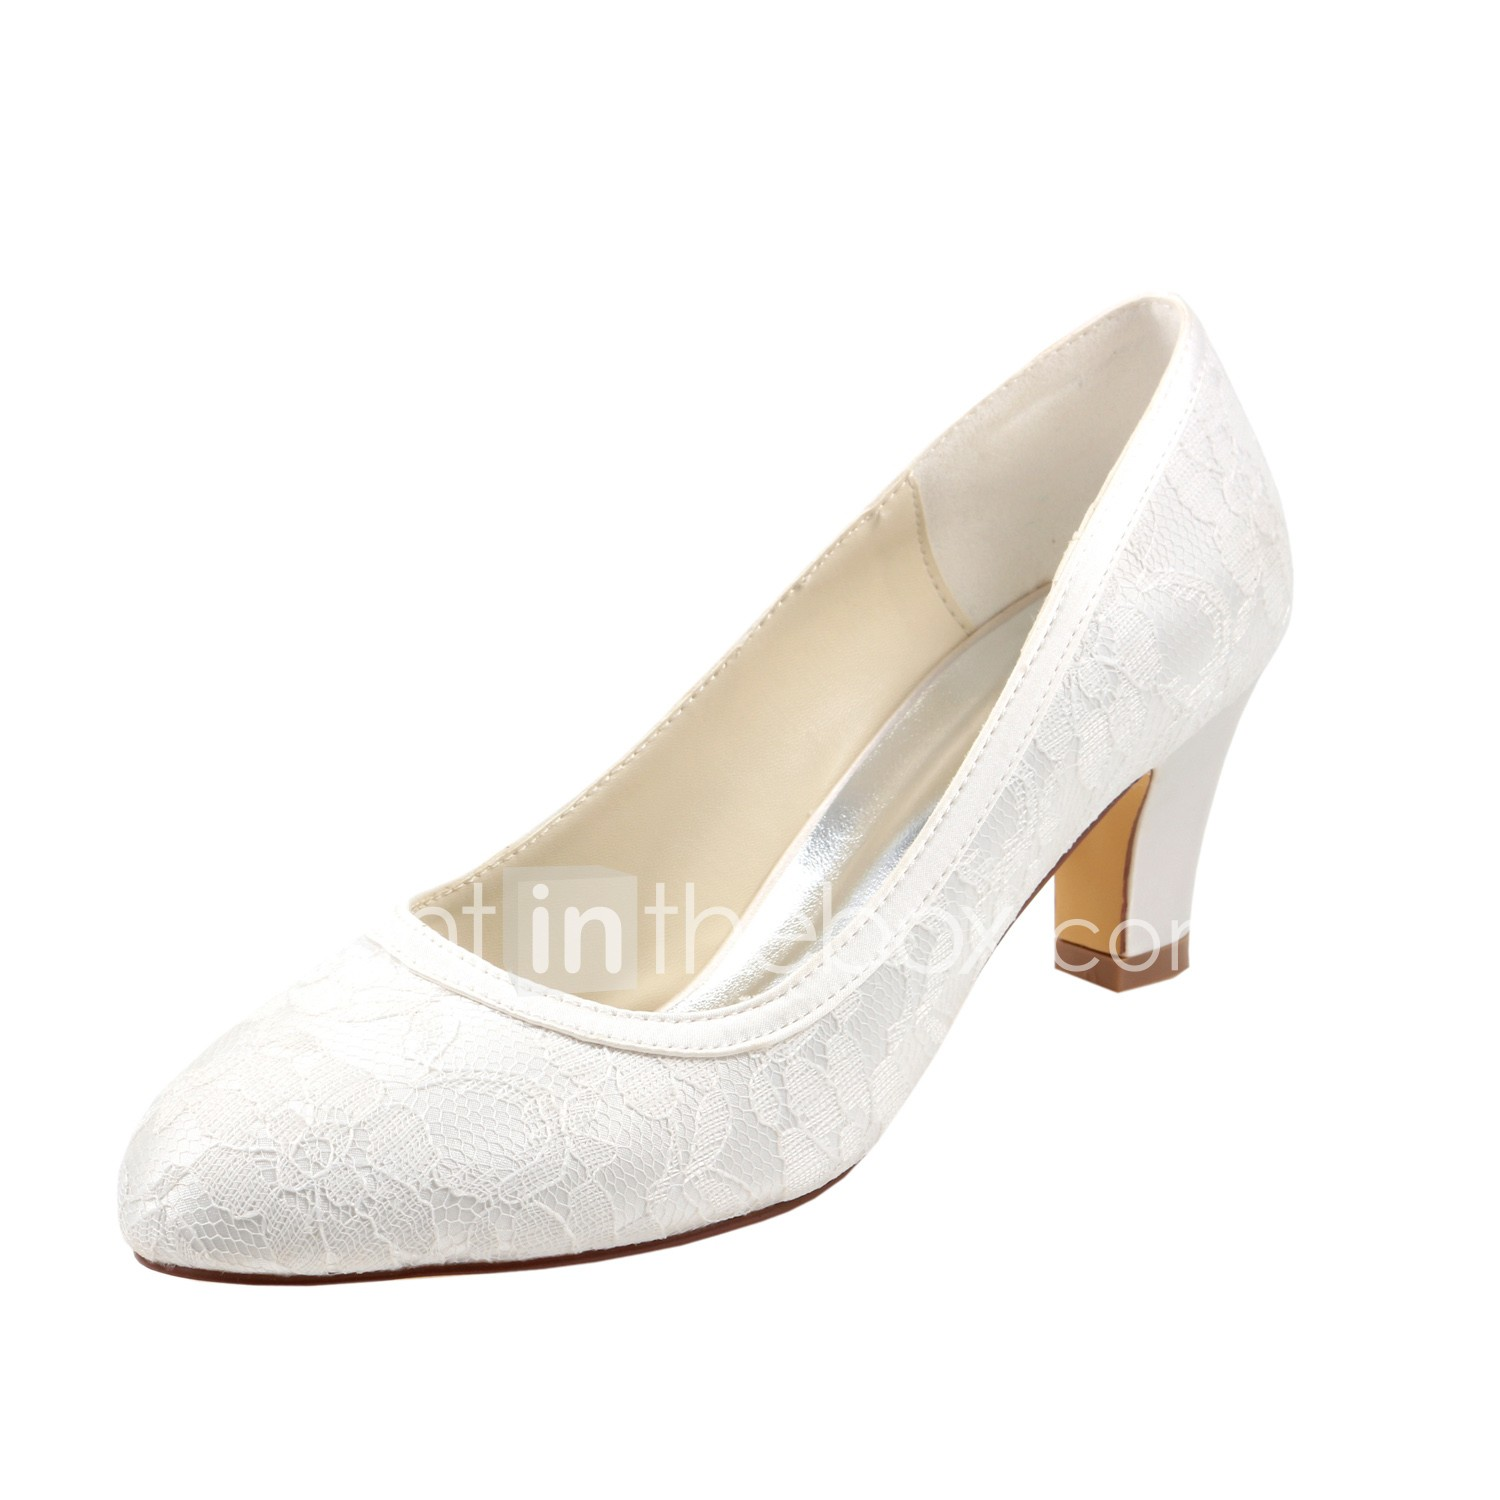 Women's Wedding Shoes Chunky Heel Round Toe Stretch Satin